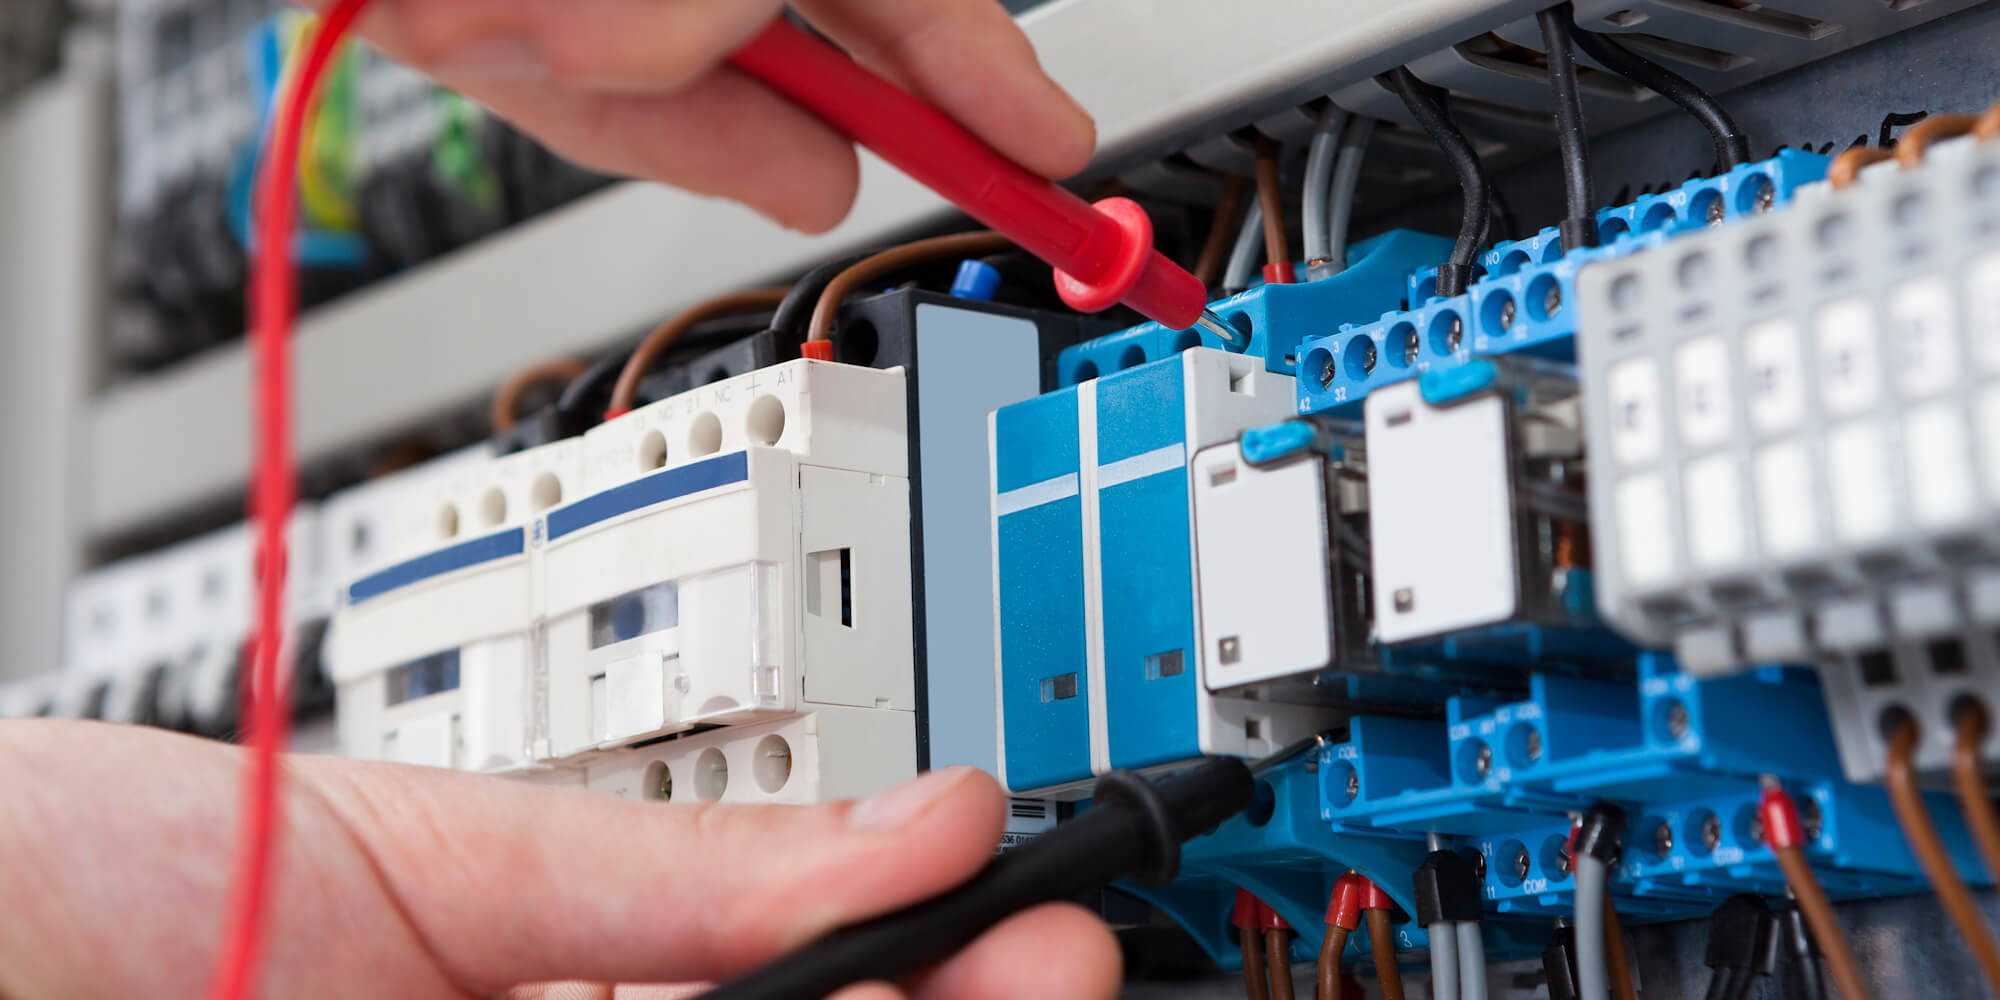 Commercial Industrial Electricians West Midlands Md Electrical Wiring And Installation Automated Systems